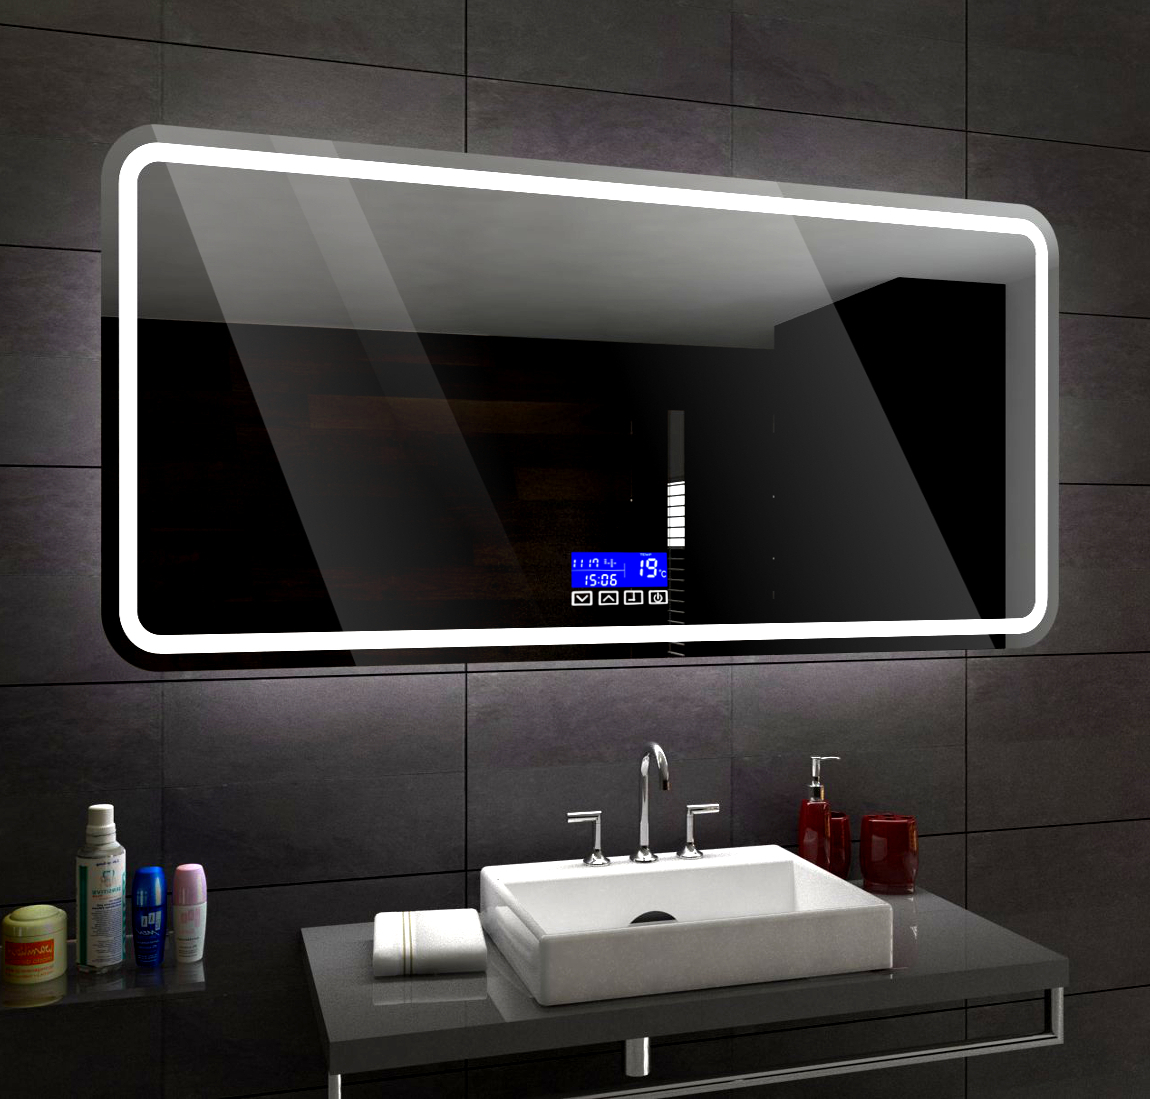 clair del miroir salle de bain led pour mesurer madrid lcd touch panneau ebay. Black Bedroom Furniture Sets. Home Design Ideas